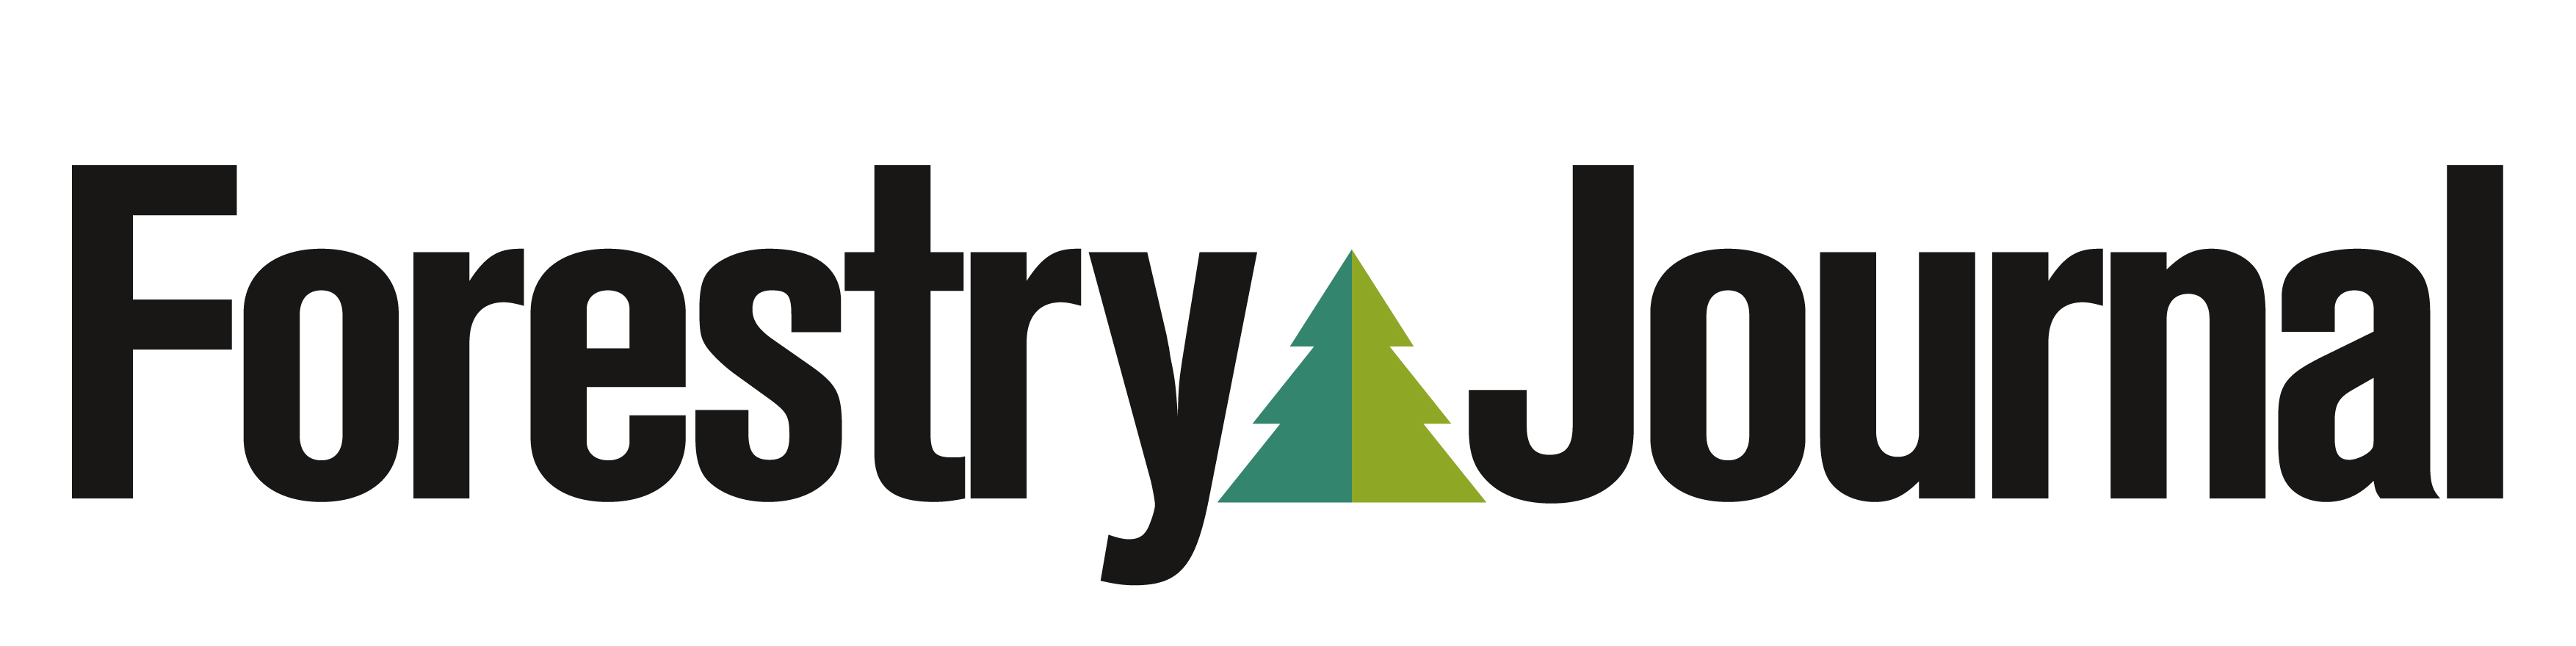 forestry-journal_no-strapline